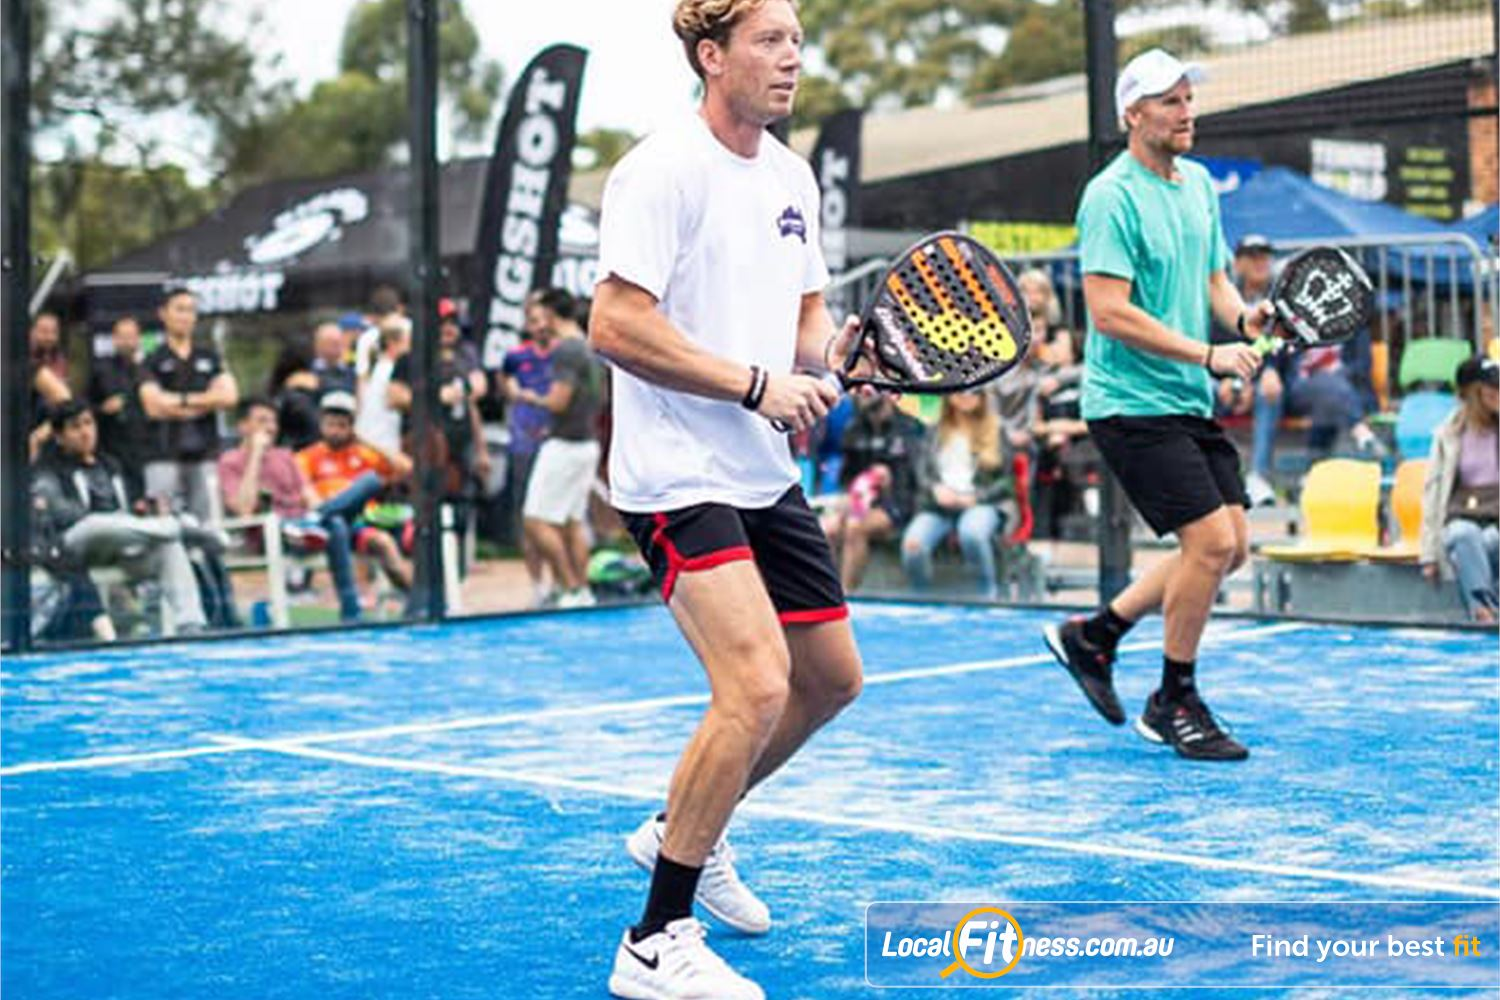 North Ryde Fitness & Aquatic North Ryde Padal is similar to existing racquet sports like tennis, racquetball and squash.